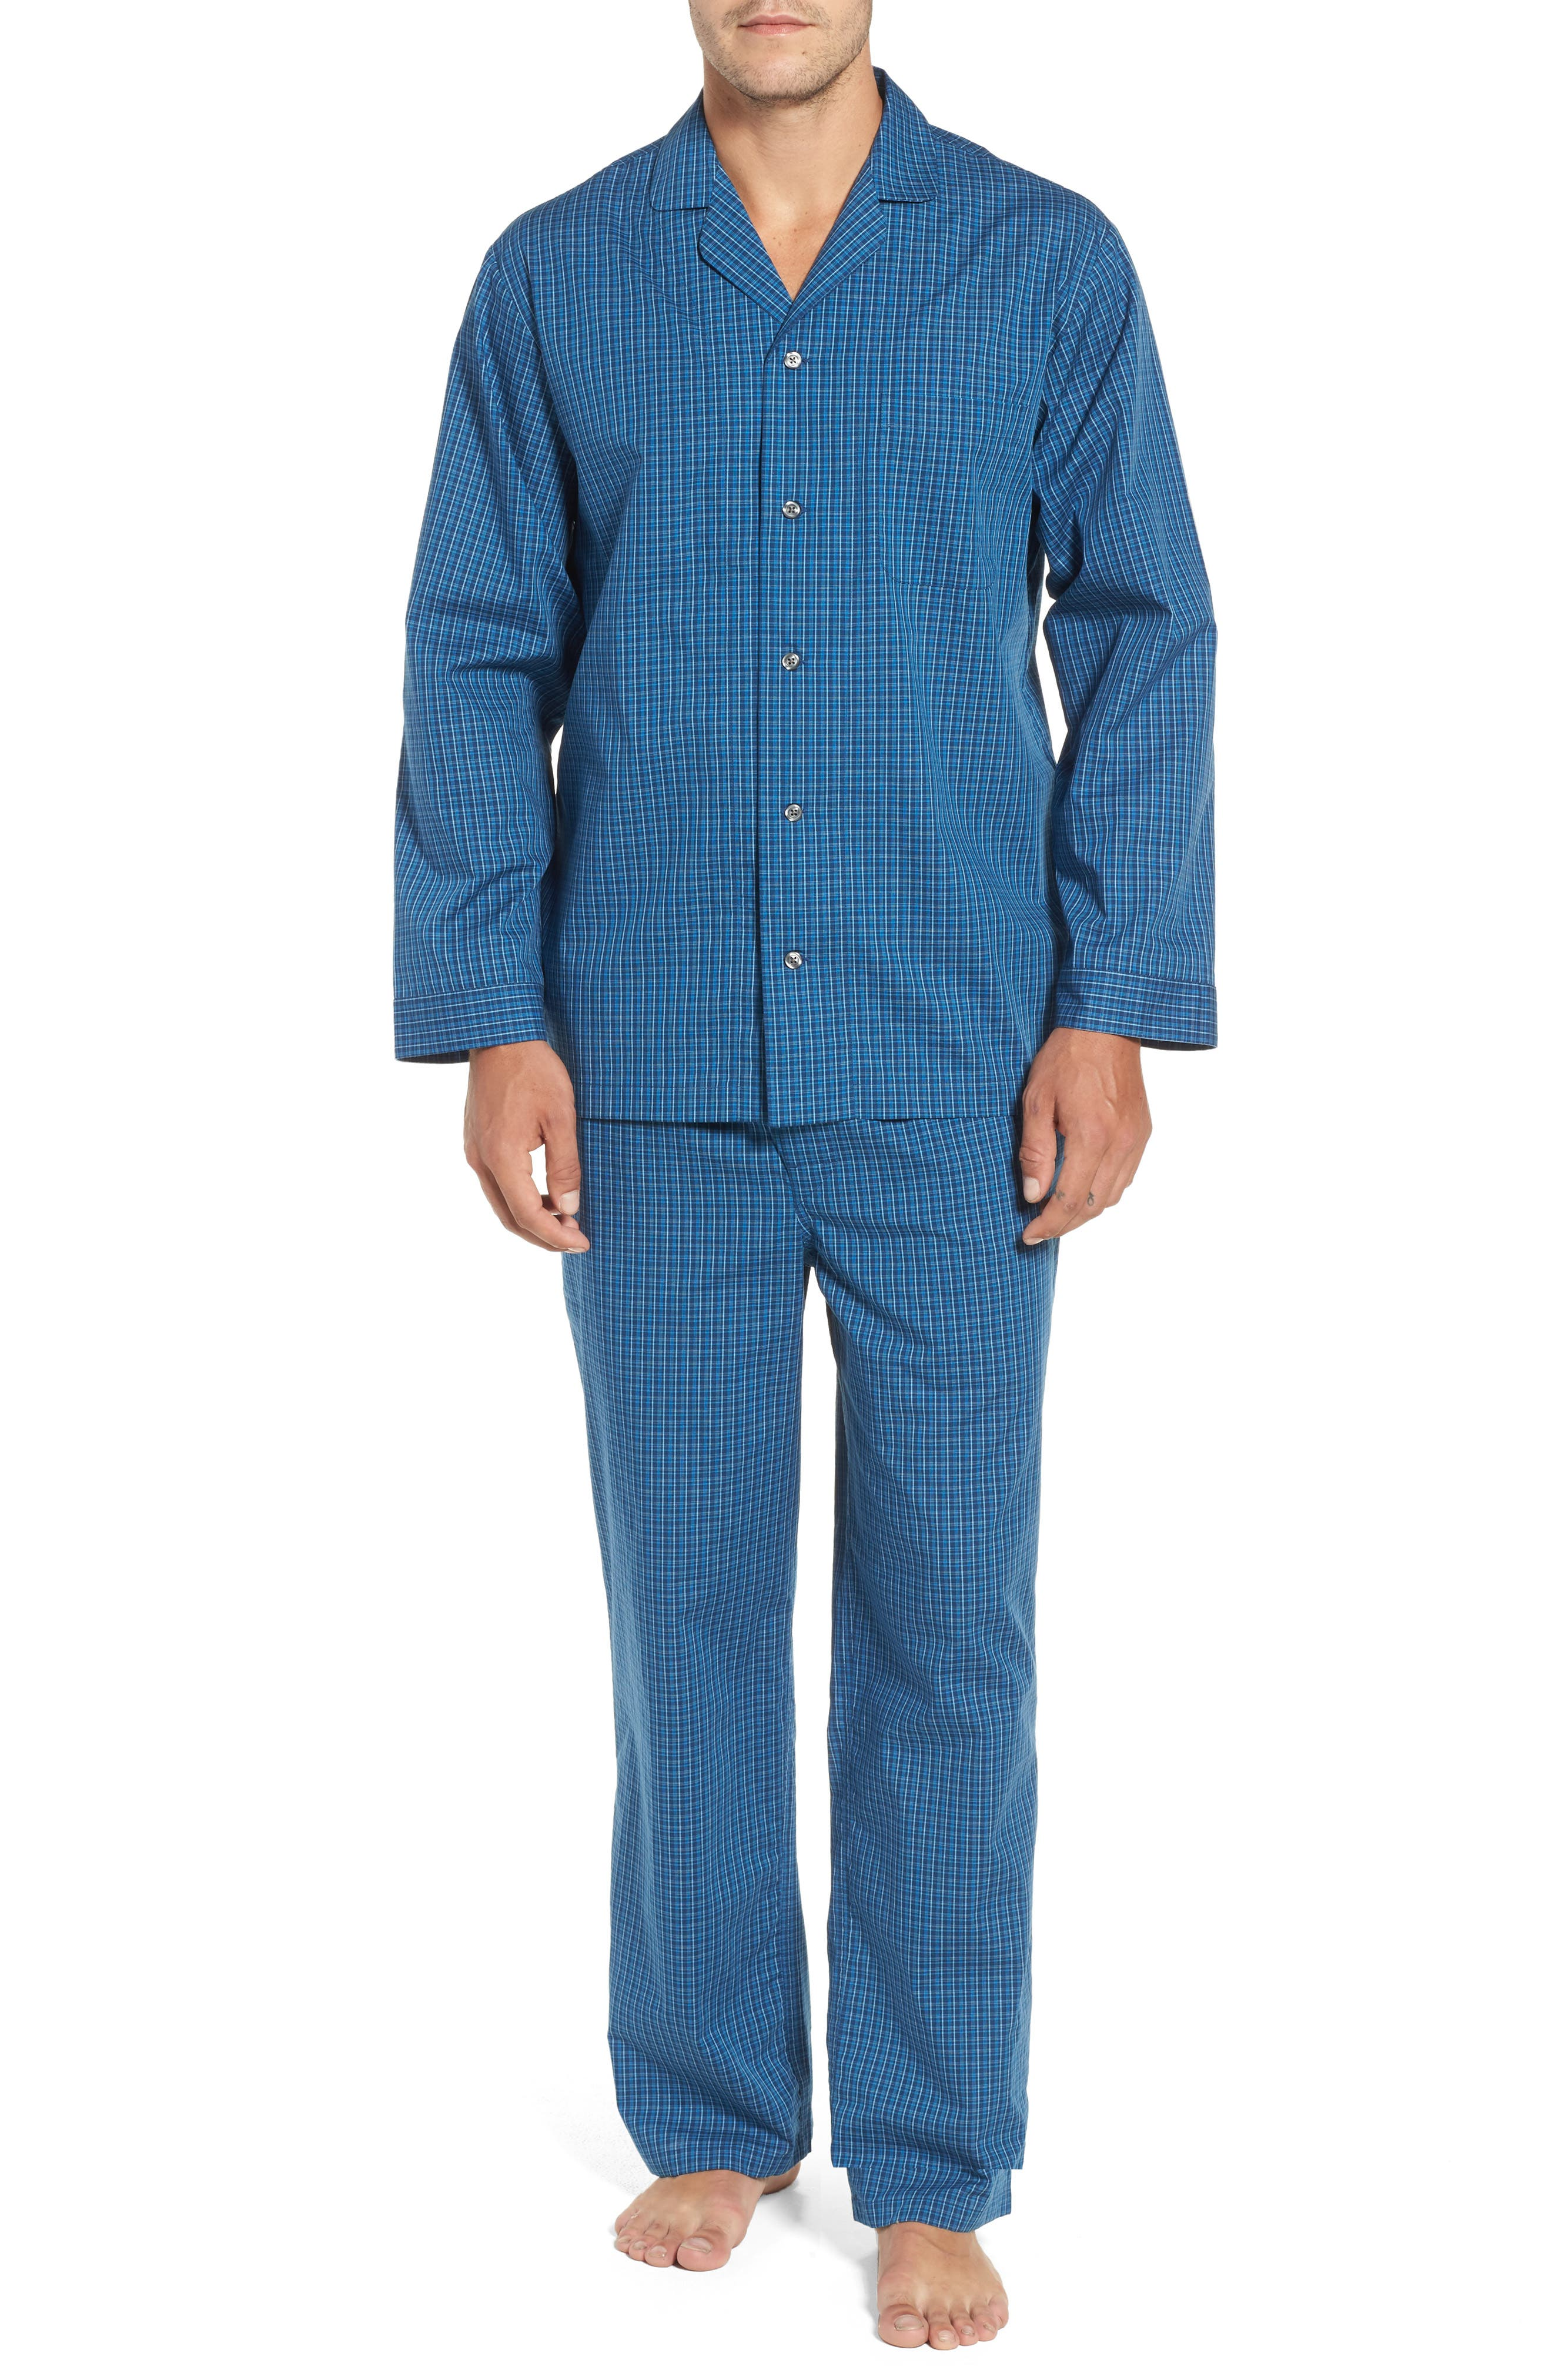 Poplin Pajama Set,                         Main,                         color, Navy Medieval- Blue Plaid